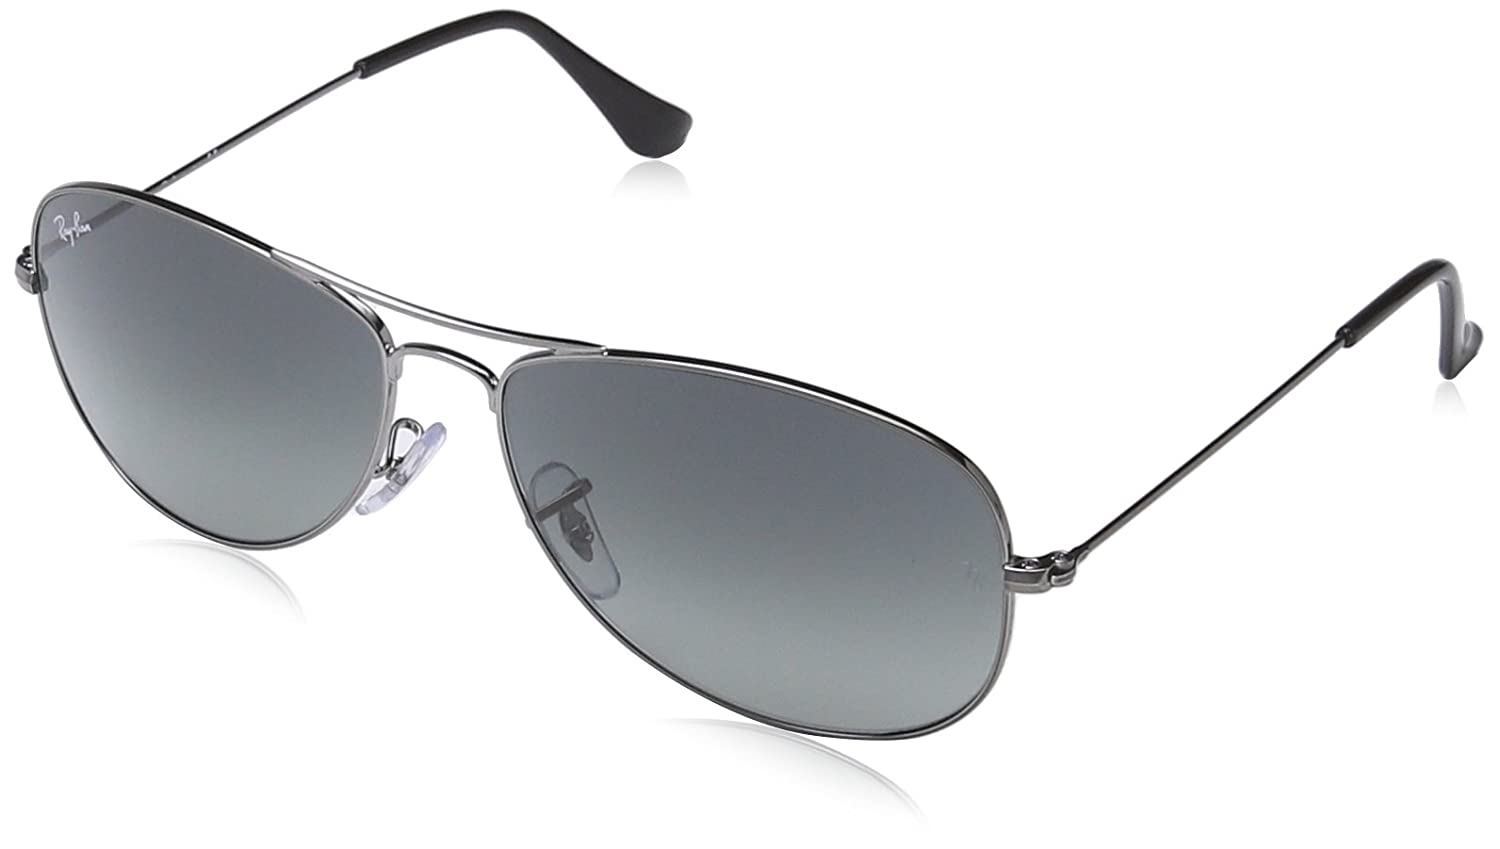 ee46f433ff Ray-Ban 3362 004 71 Silver 3362 Cockpit Aviator Sunglasses Lens Category 3   Amazon.co.uk  Clothing